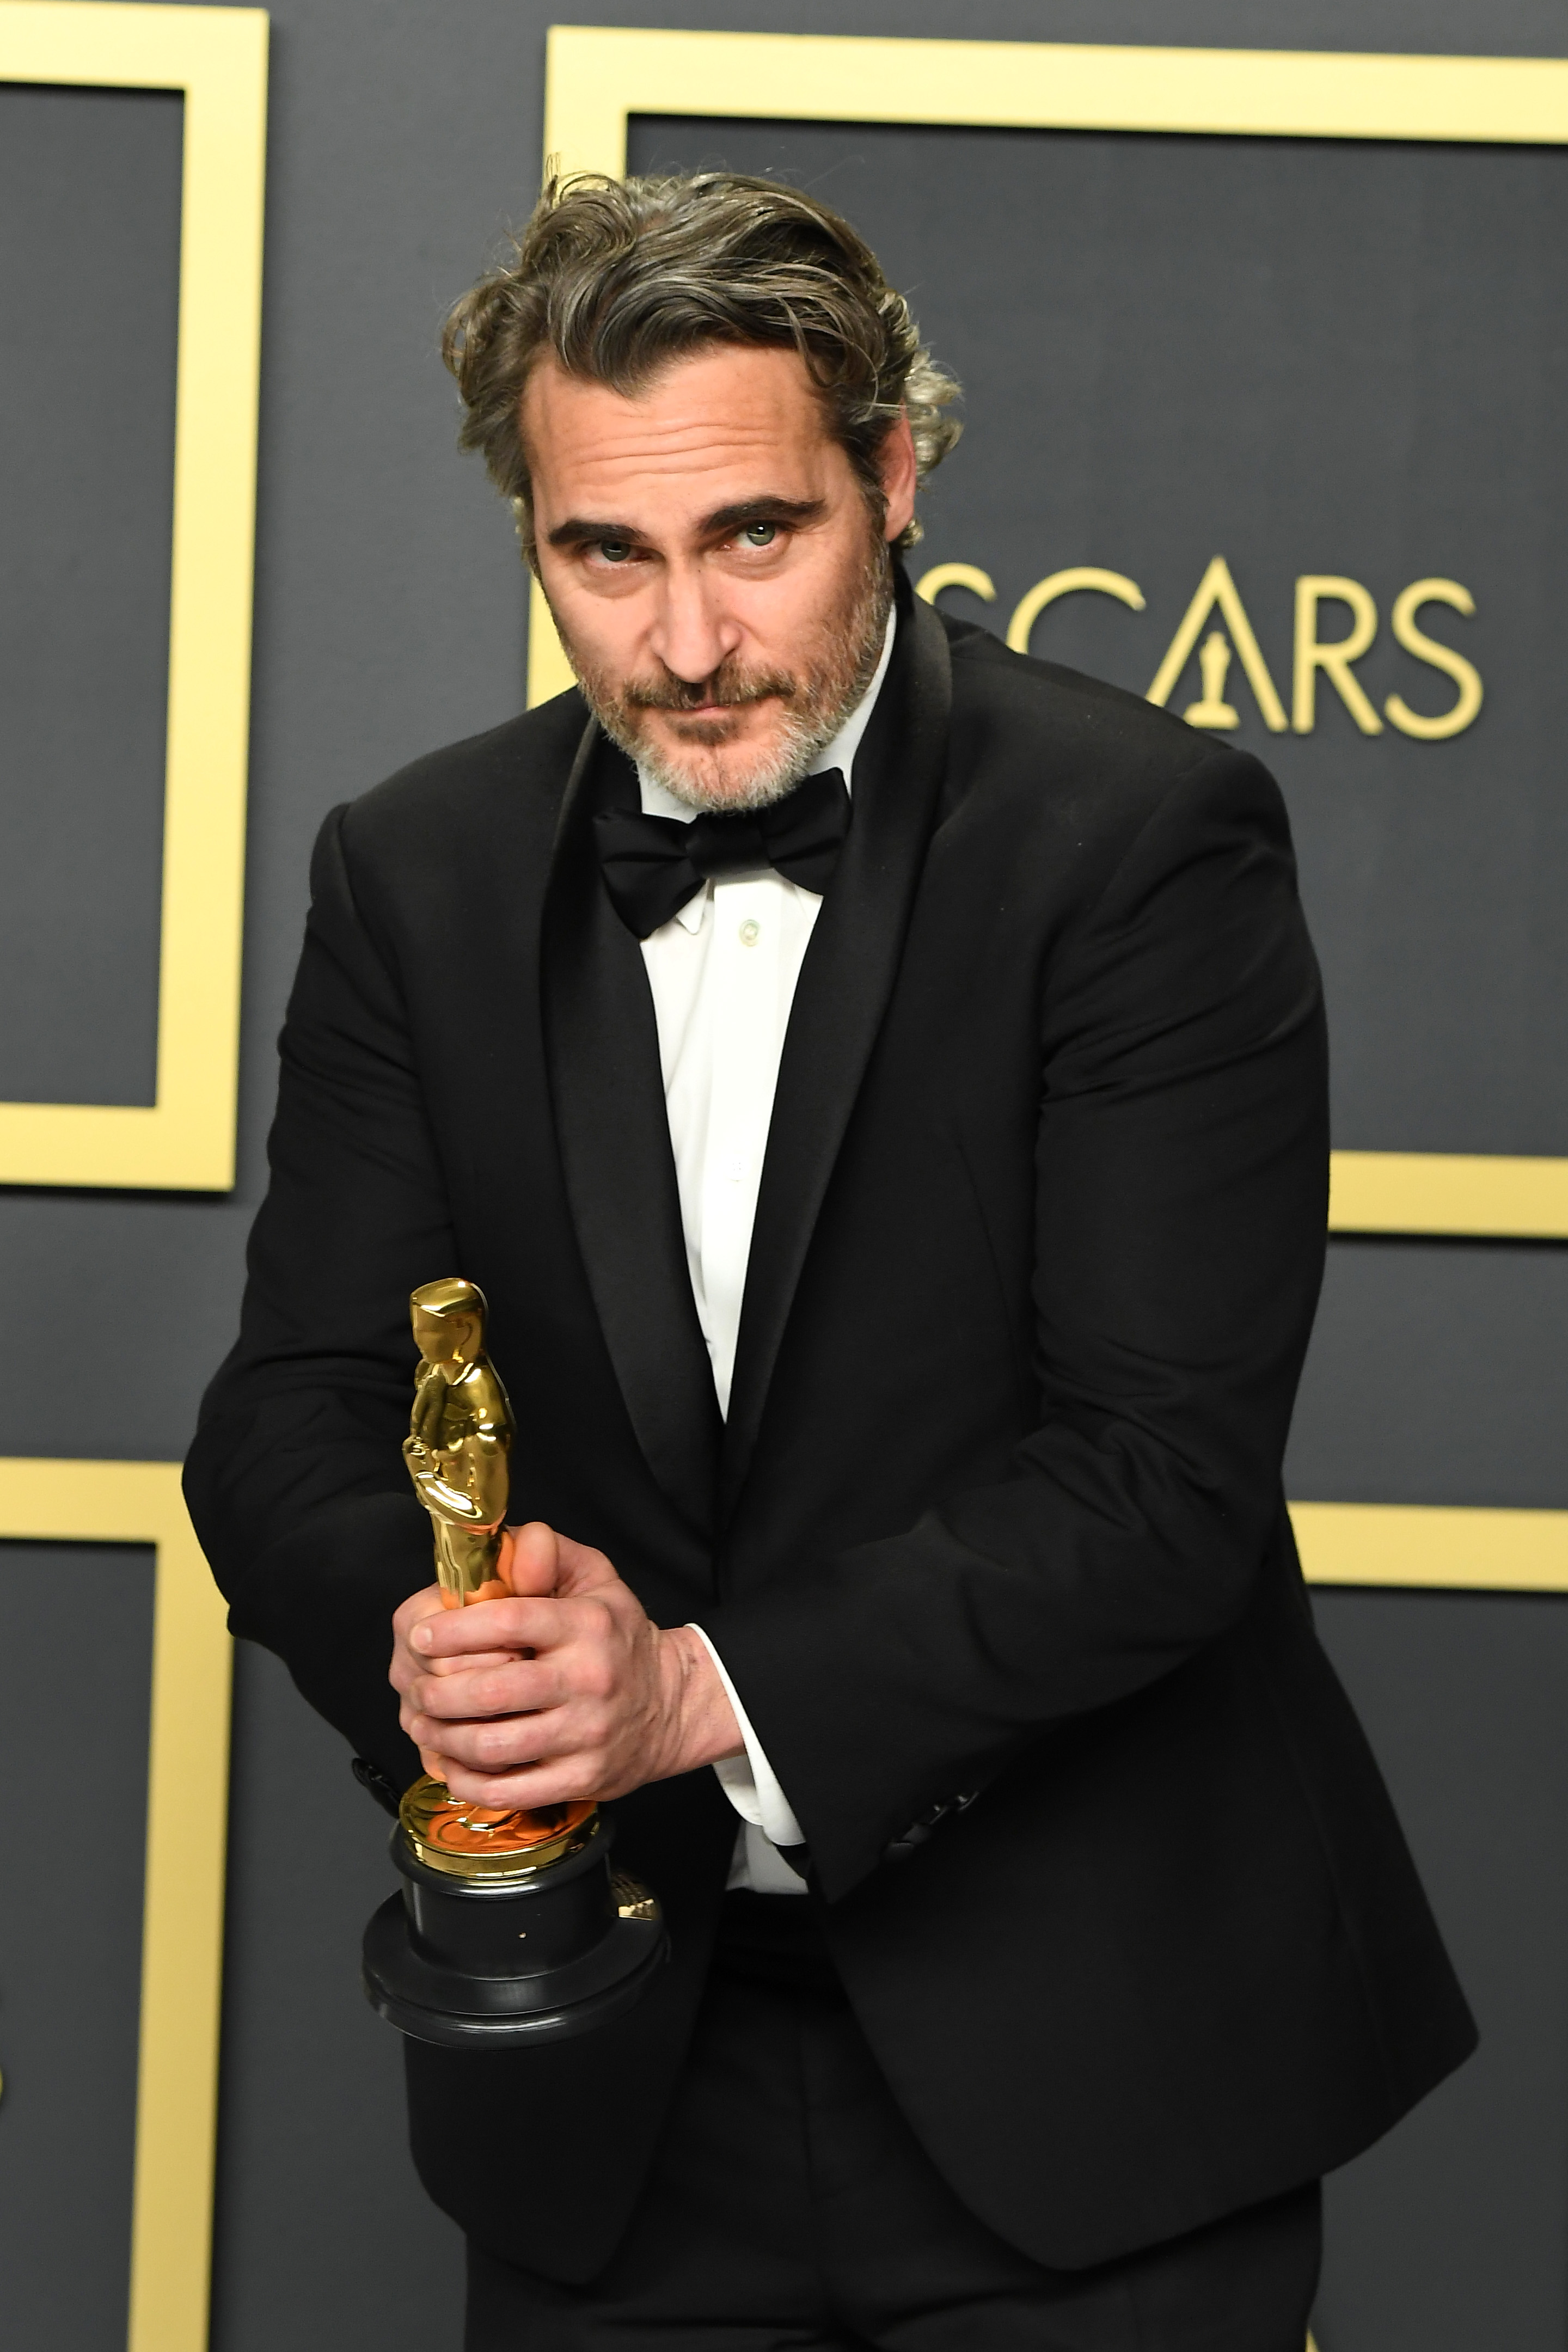 """Joaquin Phoenix, winner of the Actor in a Leading Role award for """"Joker,"""" poses in the press room during poses in the press room during the 92nd Annual Academy Awards at Hollywood and Highland on February 09, 2020 in Hollywood, California. (Photo by Steve Granitz/WireImage )"""